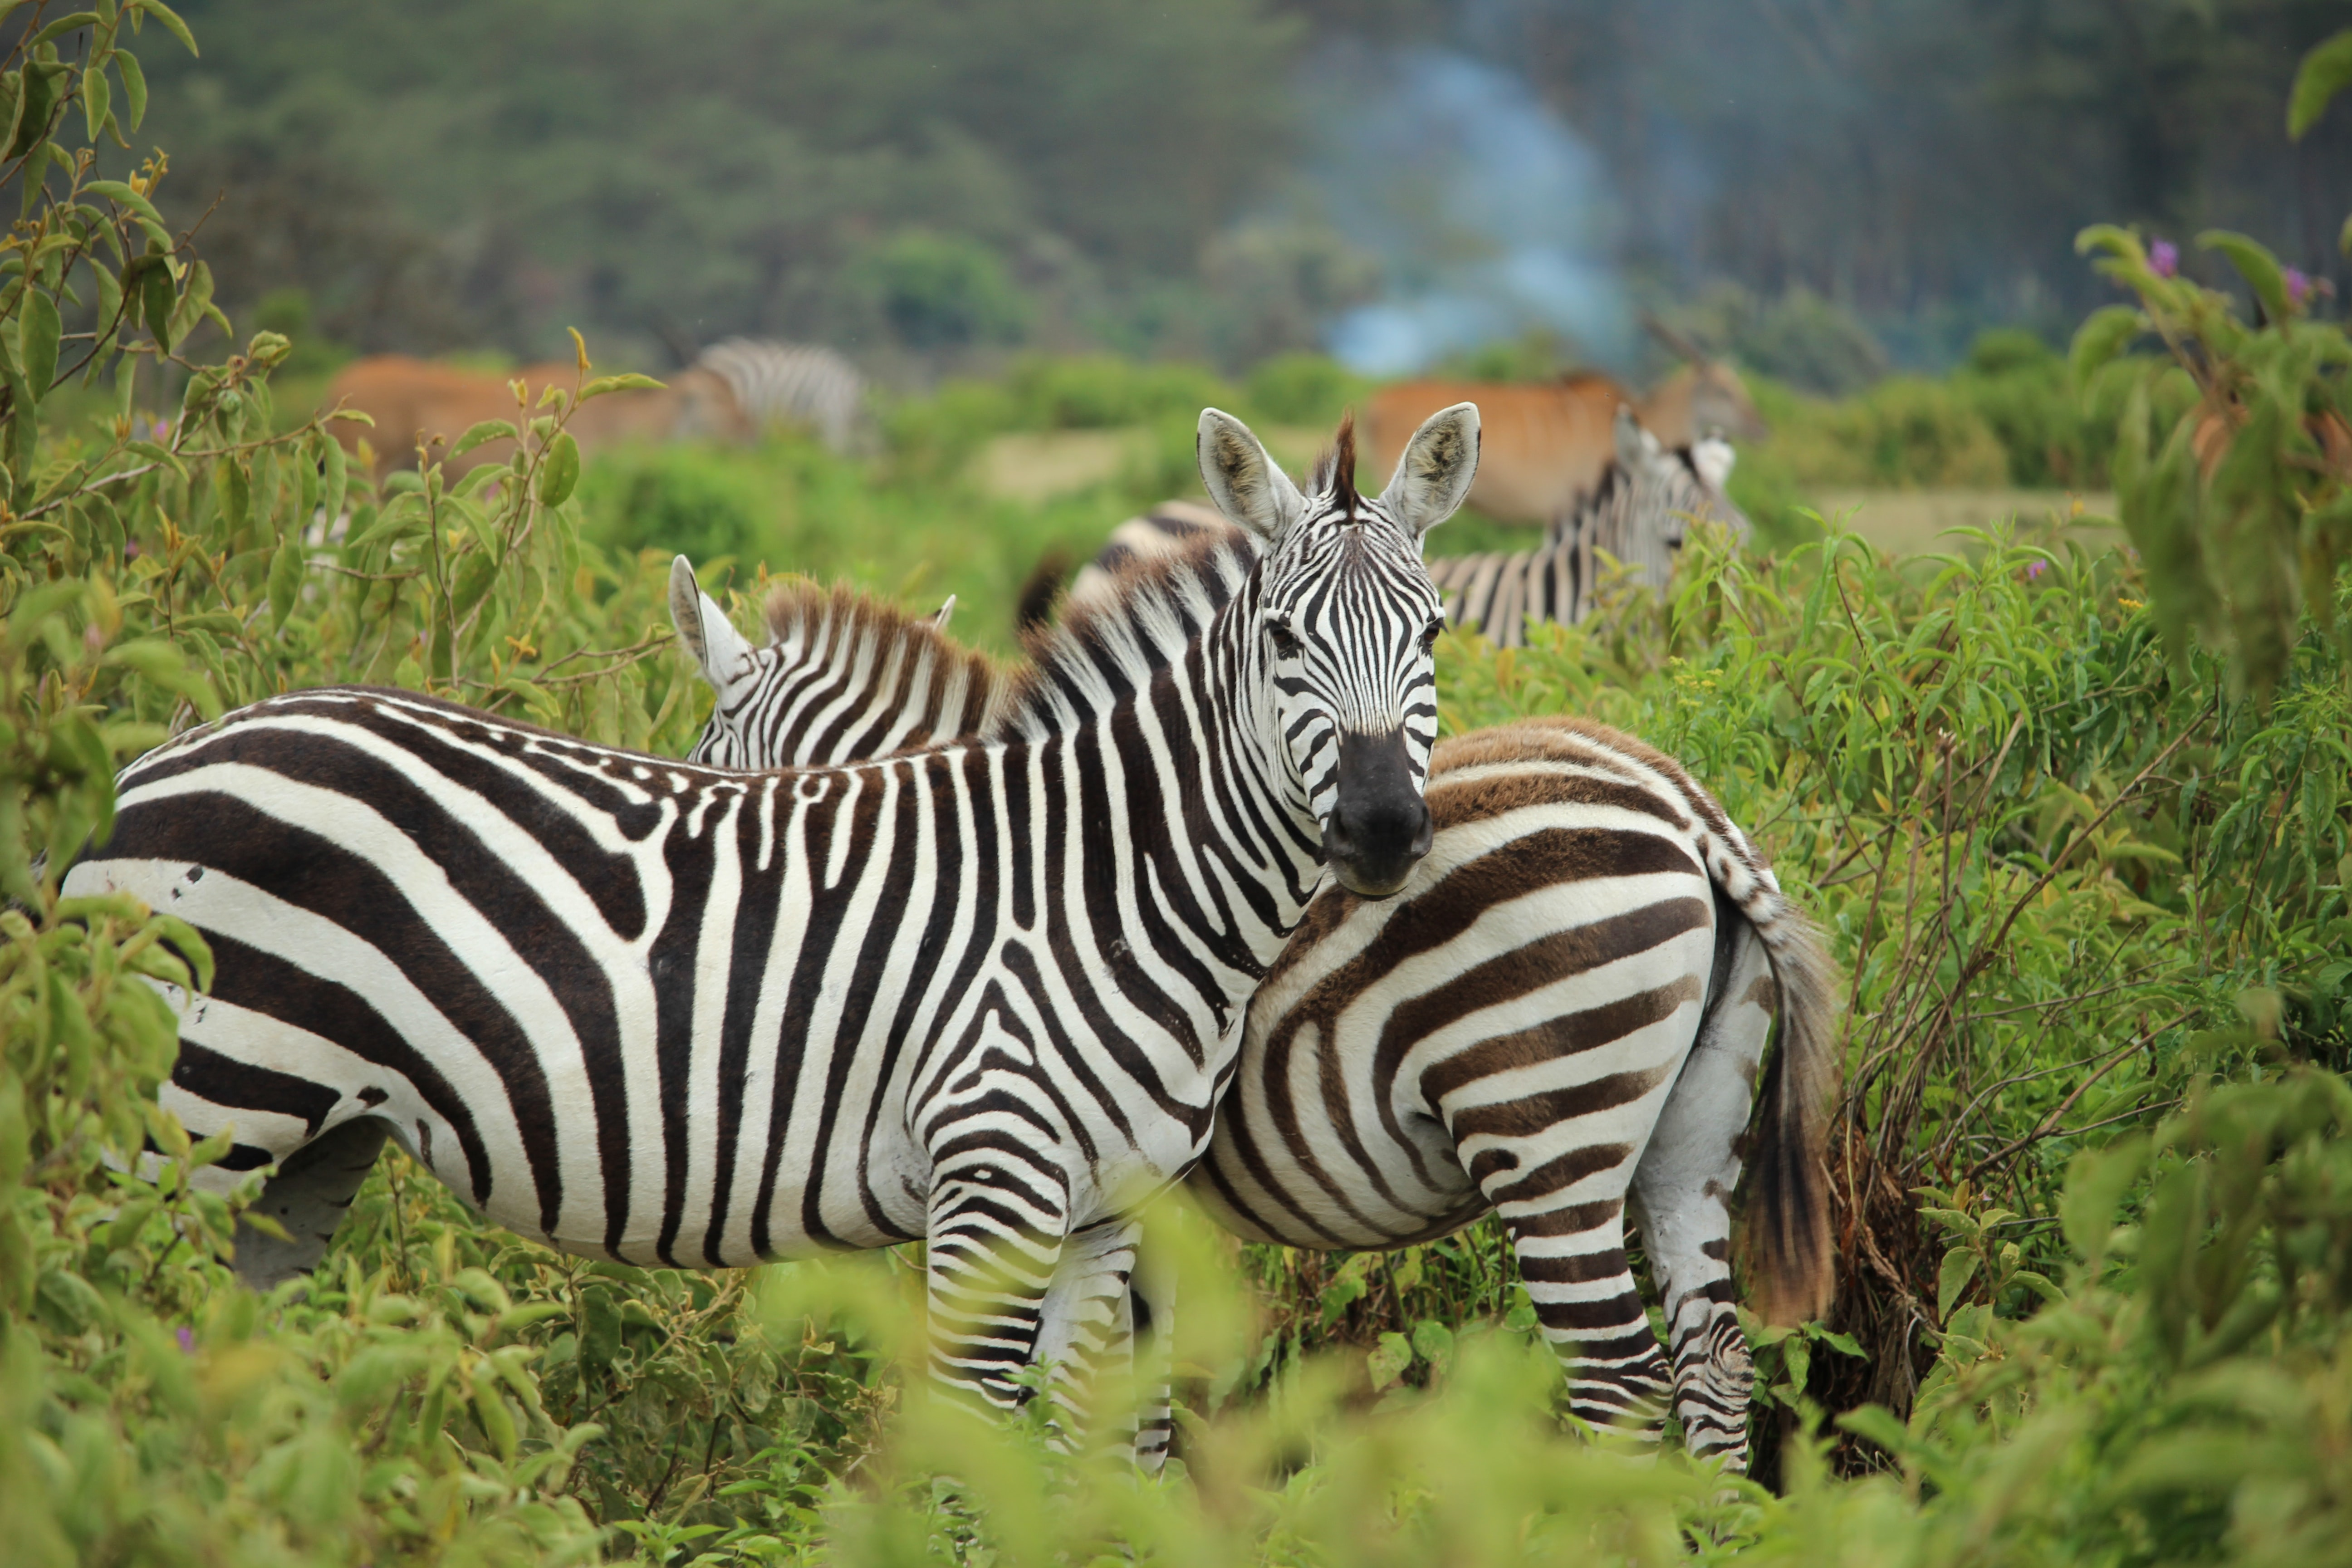 Zebras standing in foliage and looking at the camera